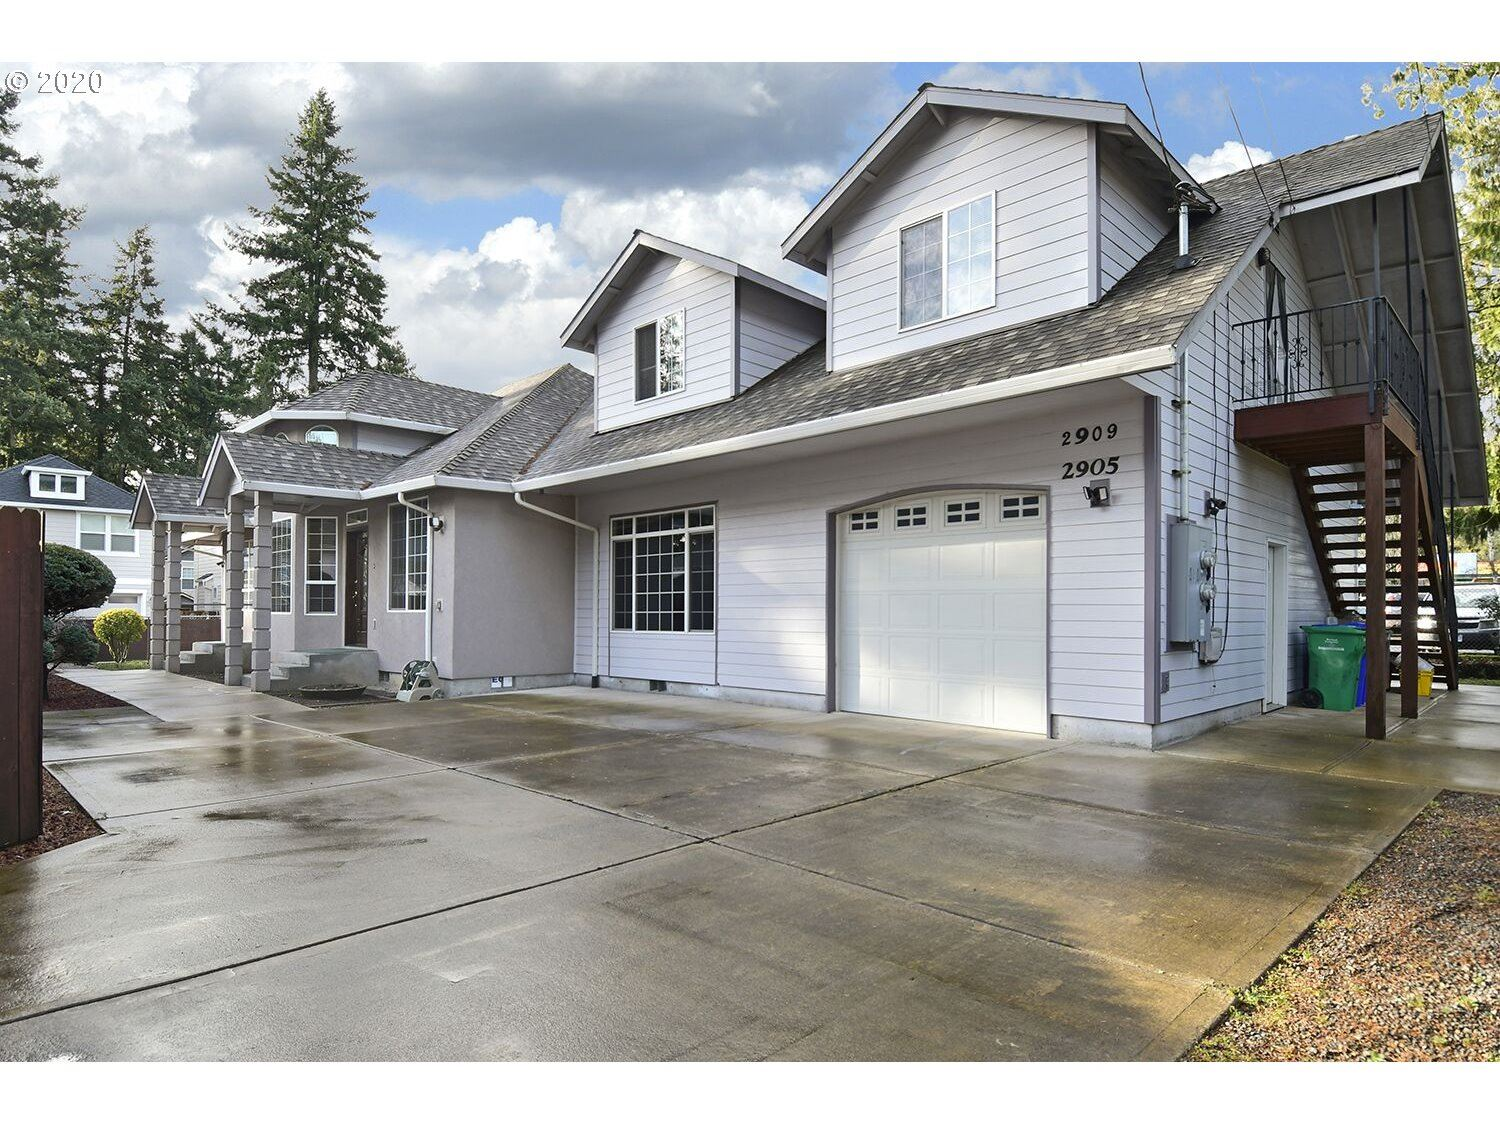 2905 SE 118TH AVE, Portland, OR 97266 - MLS#: 20245966